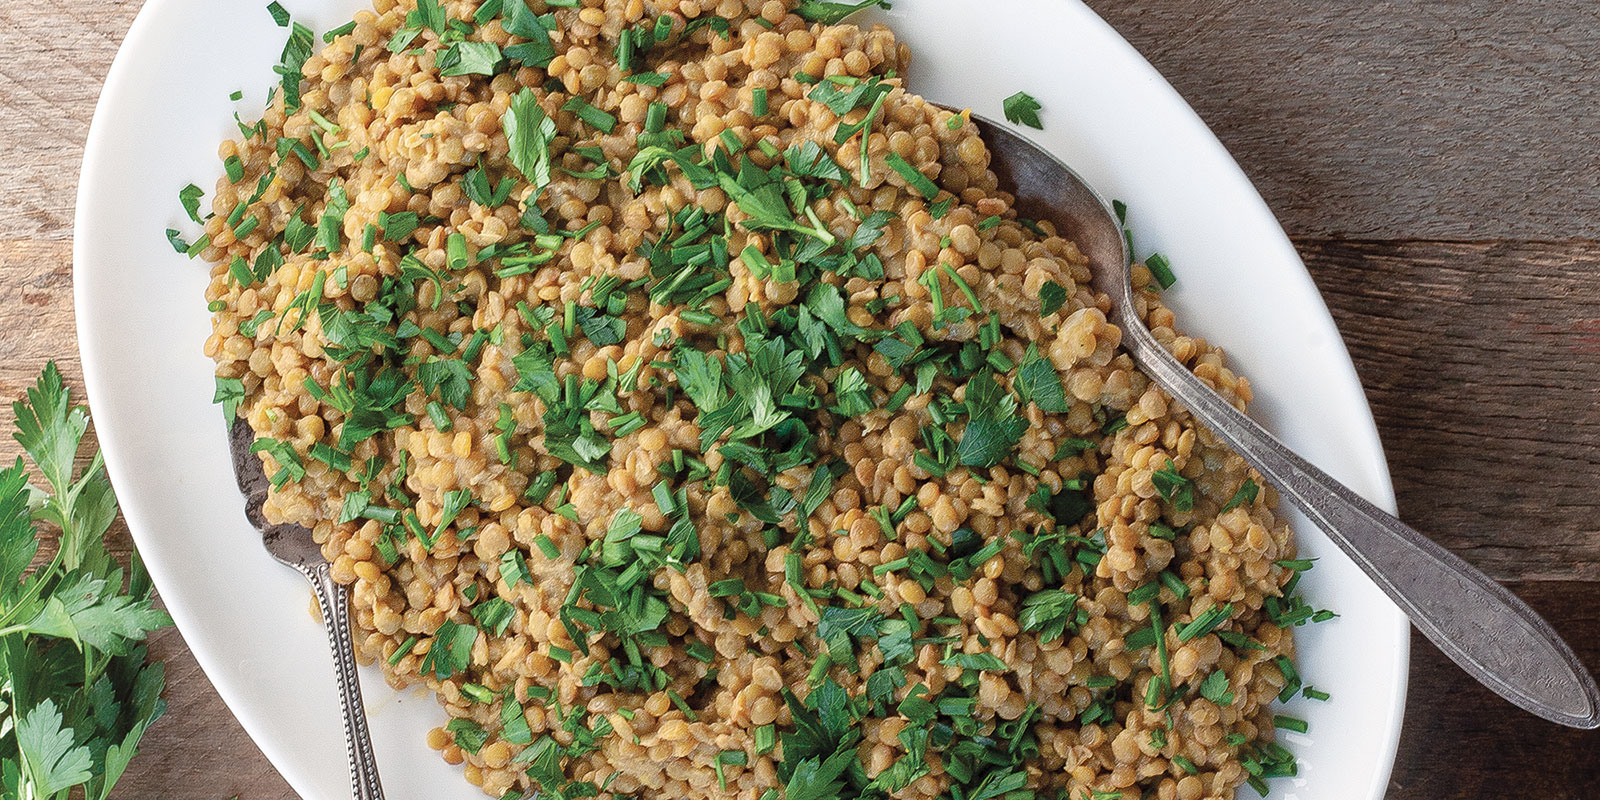 Warm French Lentil Salad with Dijon